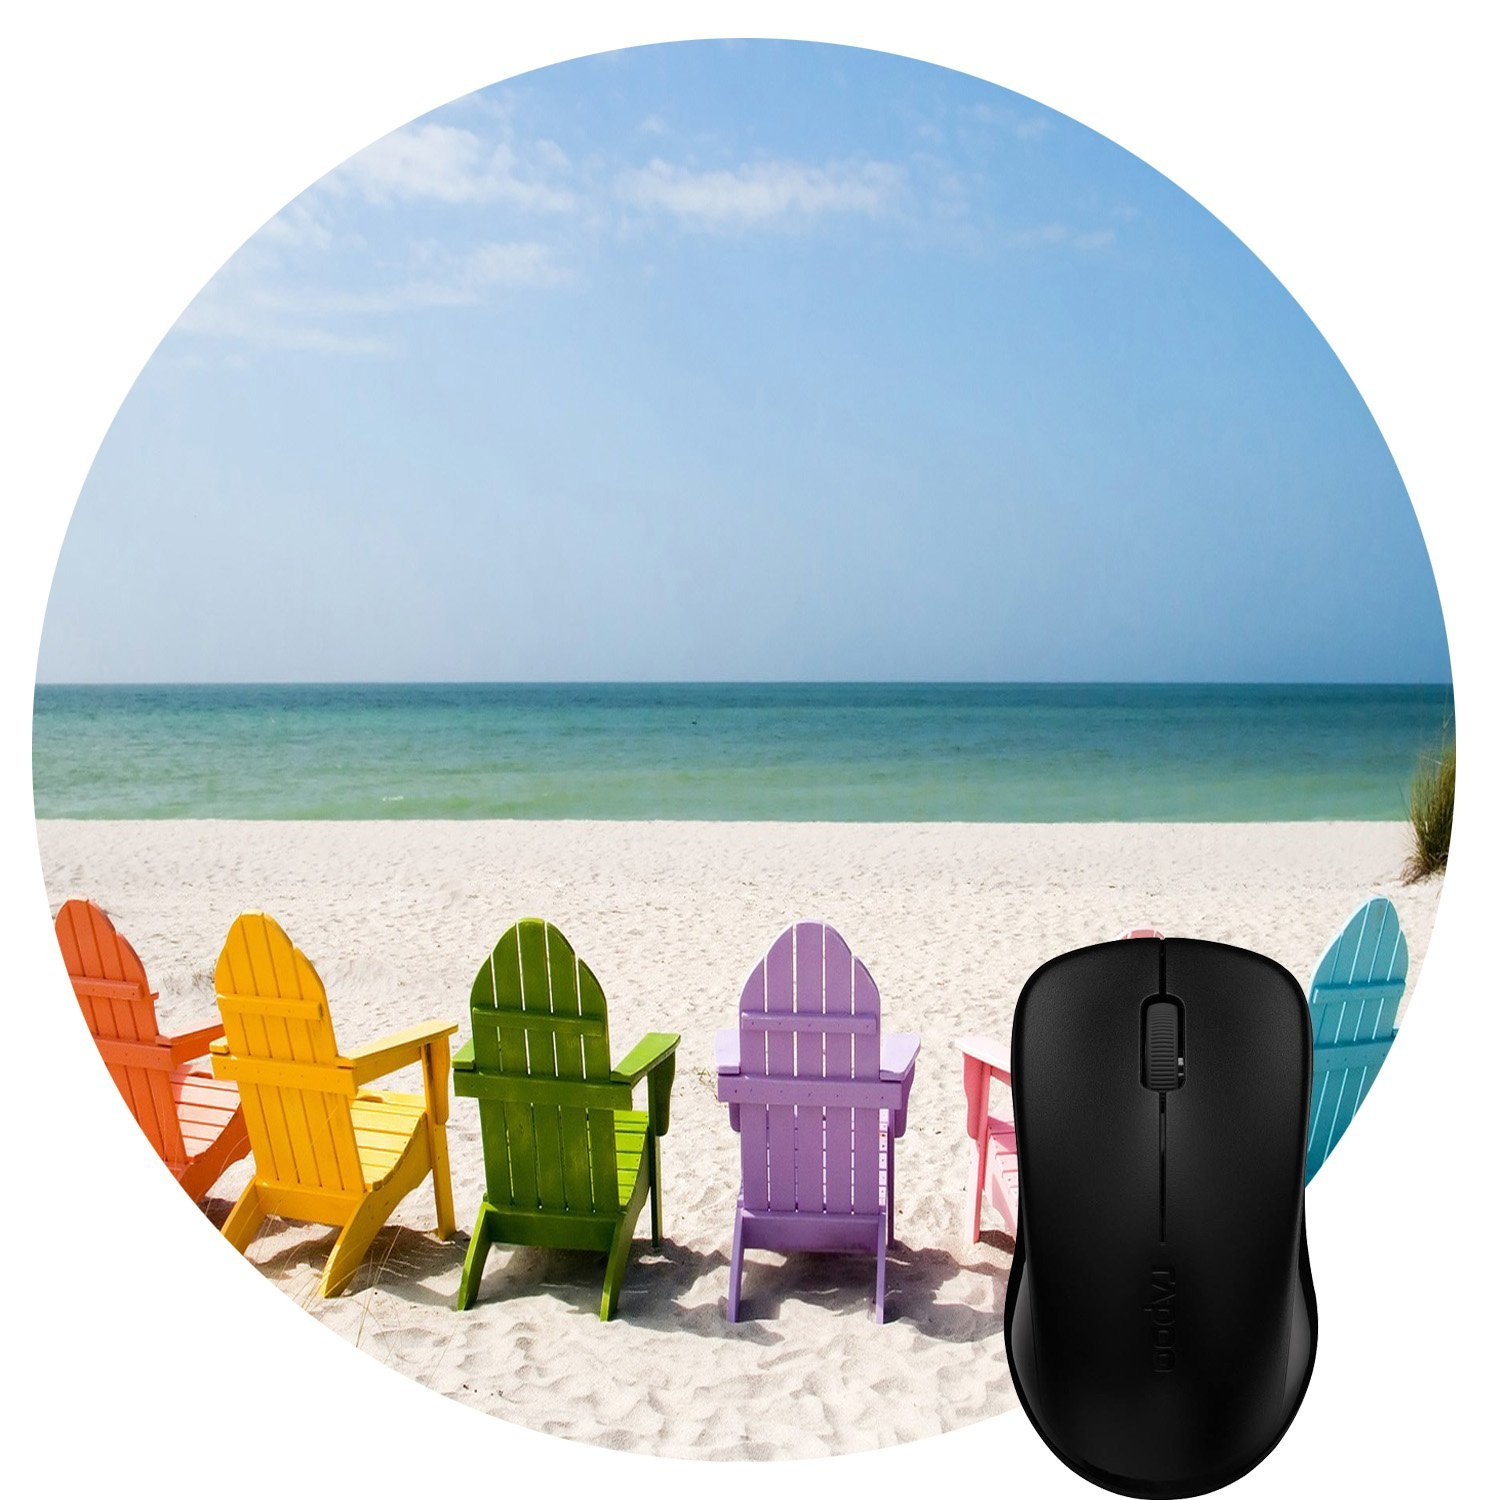 Luckcac Round Mouse Pad Customized Design, Colorful Rainbow Chairs on the Summer Sany Beach